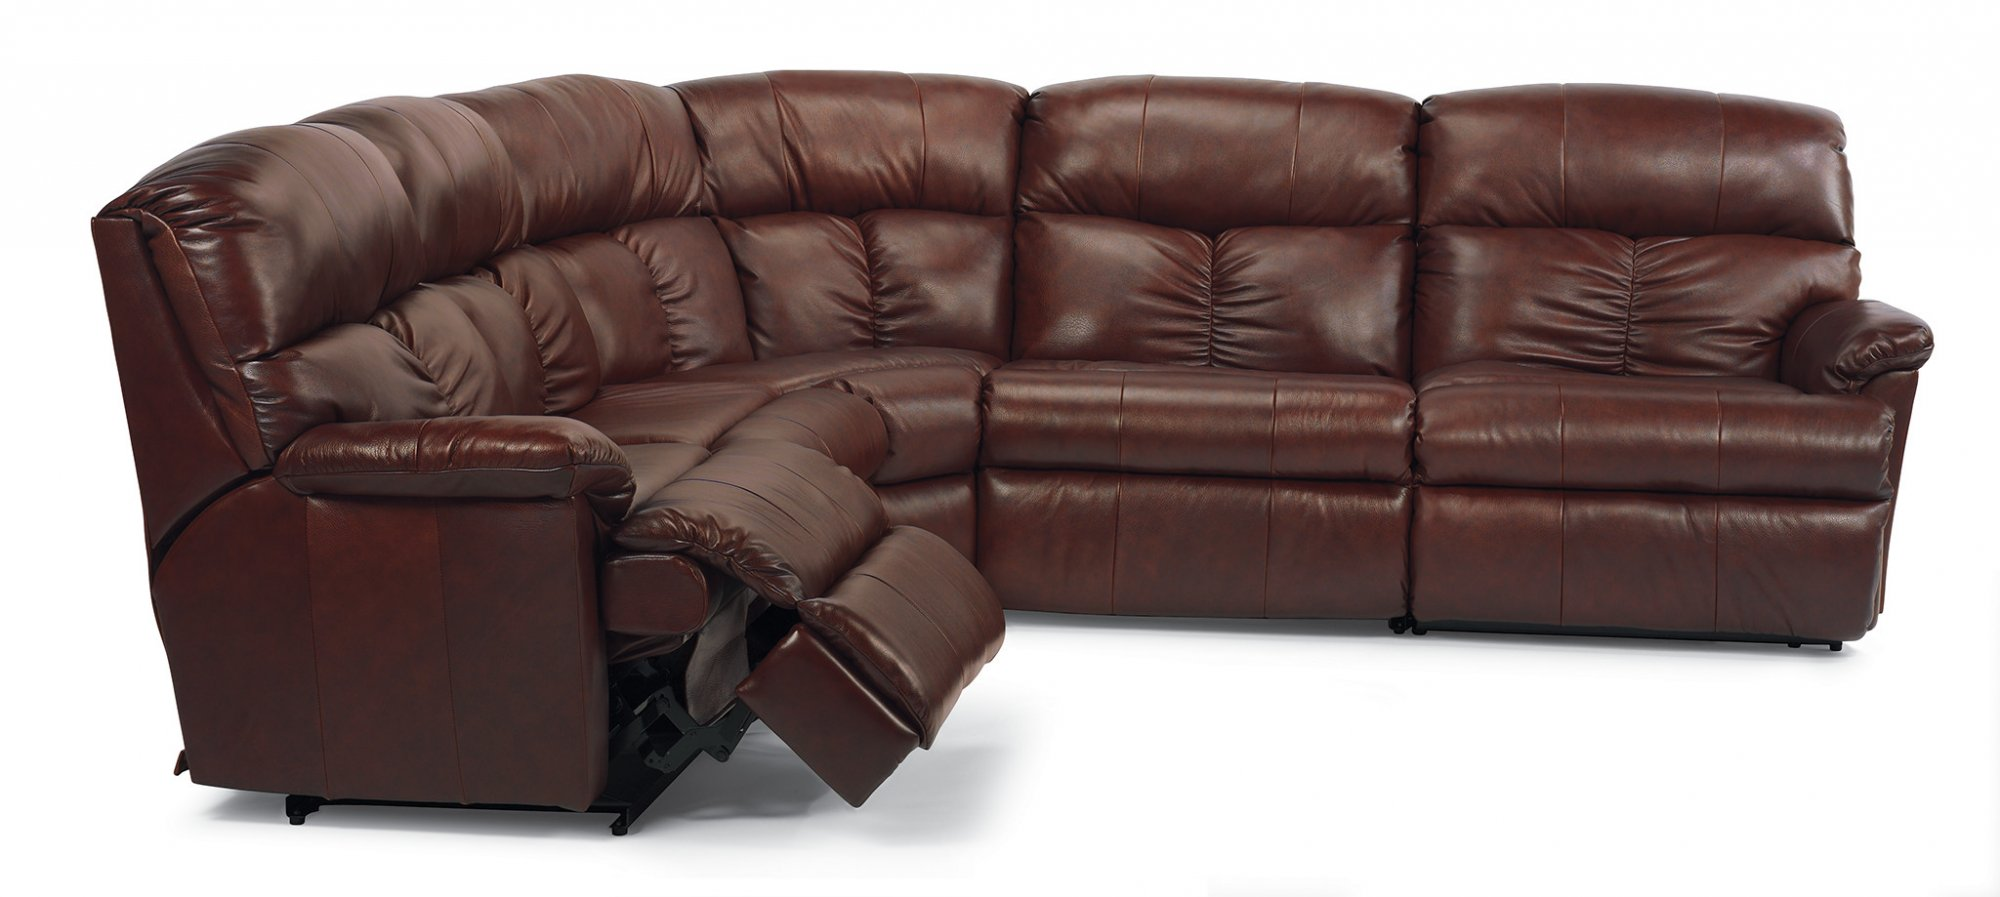 home theater leather sofa childrens chairs australia 4piece power recliner sectional